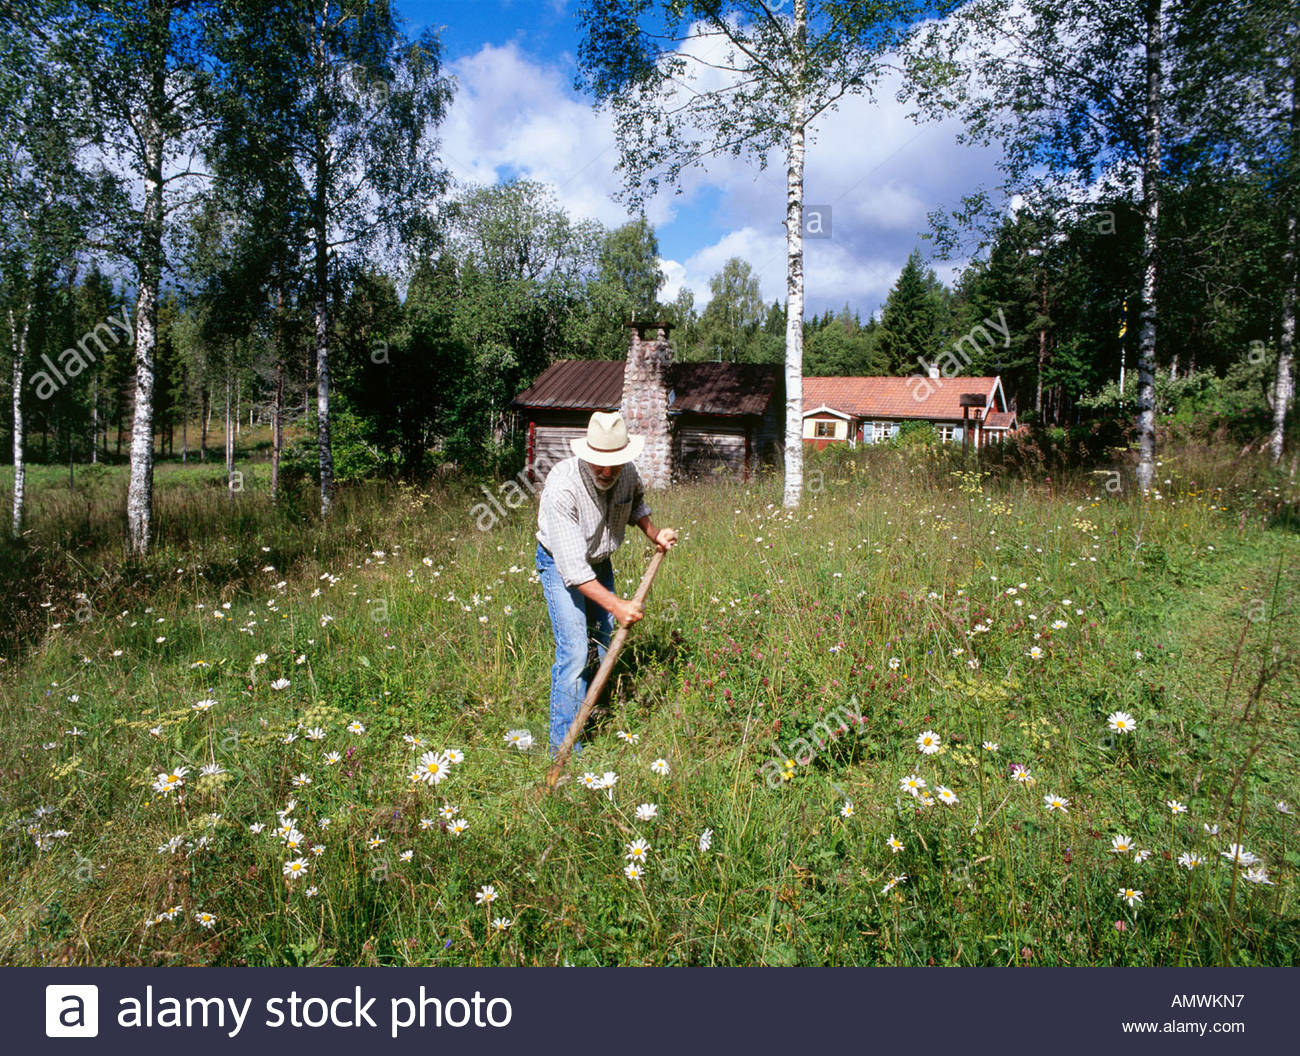 Man working in the garden - Stock Image